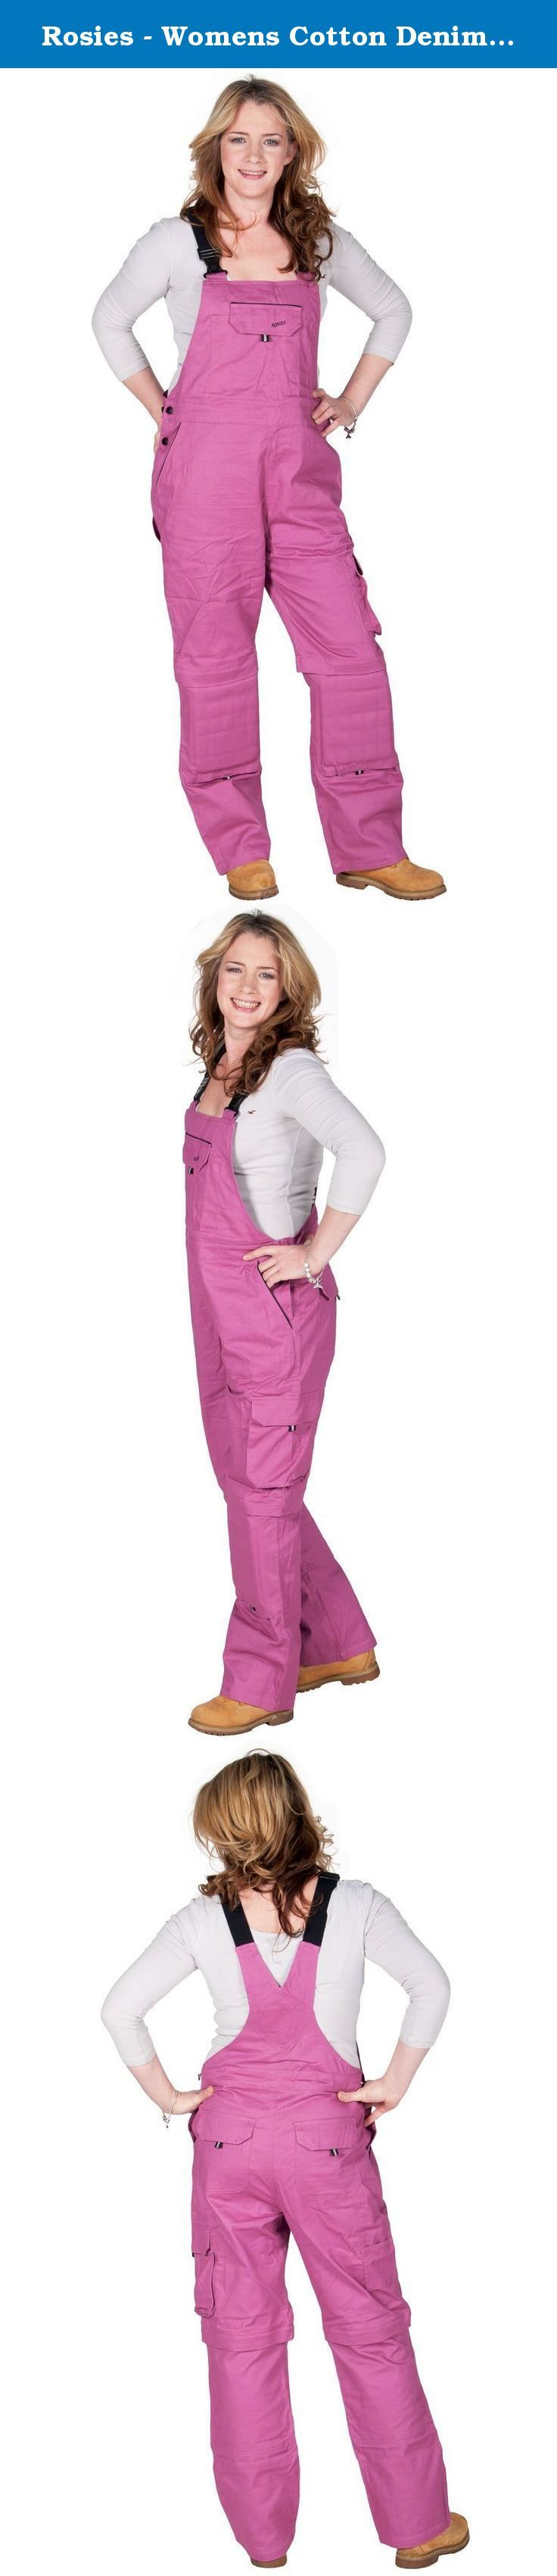 Rosies - Womens Cotton Denim Bib - Dark Pink Ladies Work Overalls. *** Please Note All sizes in the Drop down Bar are USA Sizes*** Regular fit dungarees from ROSIES USA Adjustable / Elasticated straps Multiple pockets (incl. a hidden inside zipper pocket) Side button fastening (adjustable) Knee pad pouches (with removable foam kneepads) Straight leg / Fits over boots Trouser legs zip off to convert into shorts Lightweight denim 100% Cotton Machine washable .